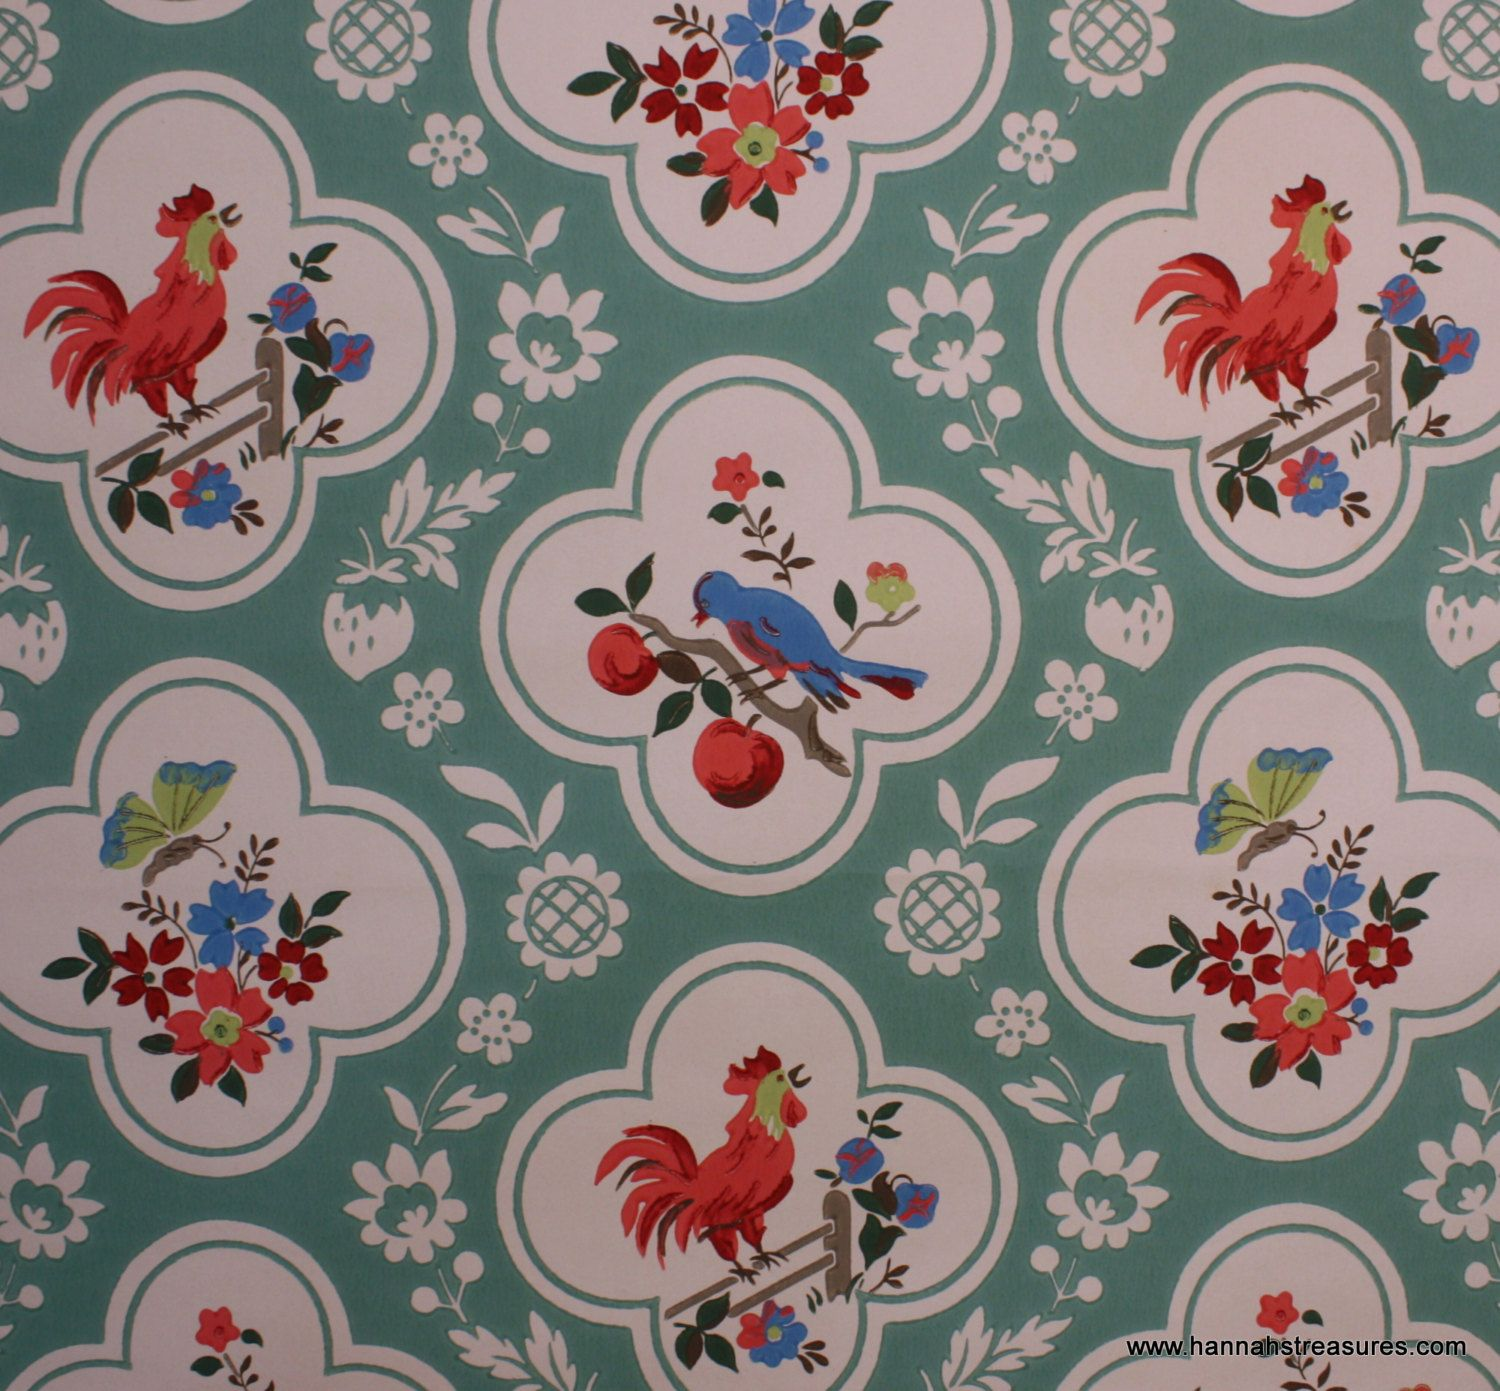 1940 S Vintage Wallpaper Red And Aqua With Birds Cherries Roosters Butterfly Retro Wallpaper Pattern Wallpaper Graphic Wallpaper